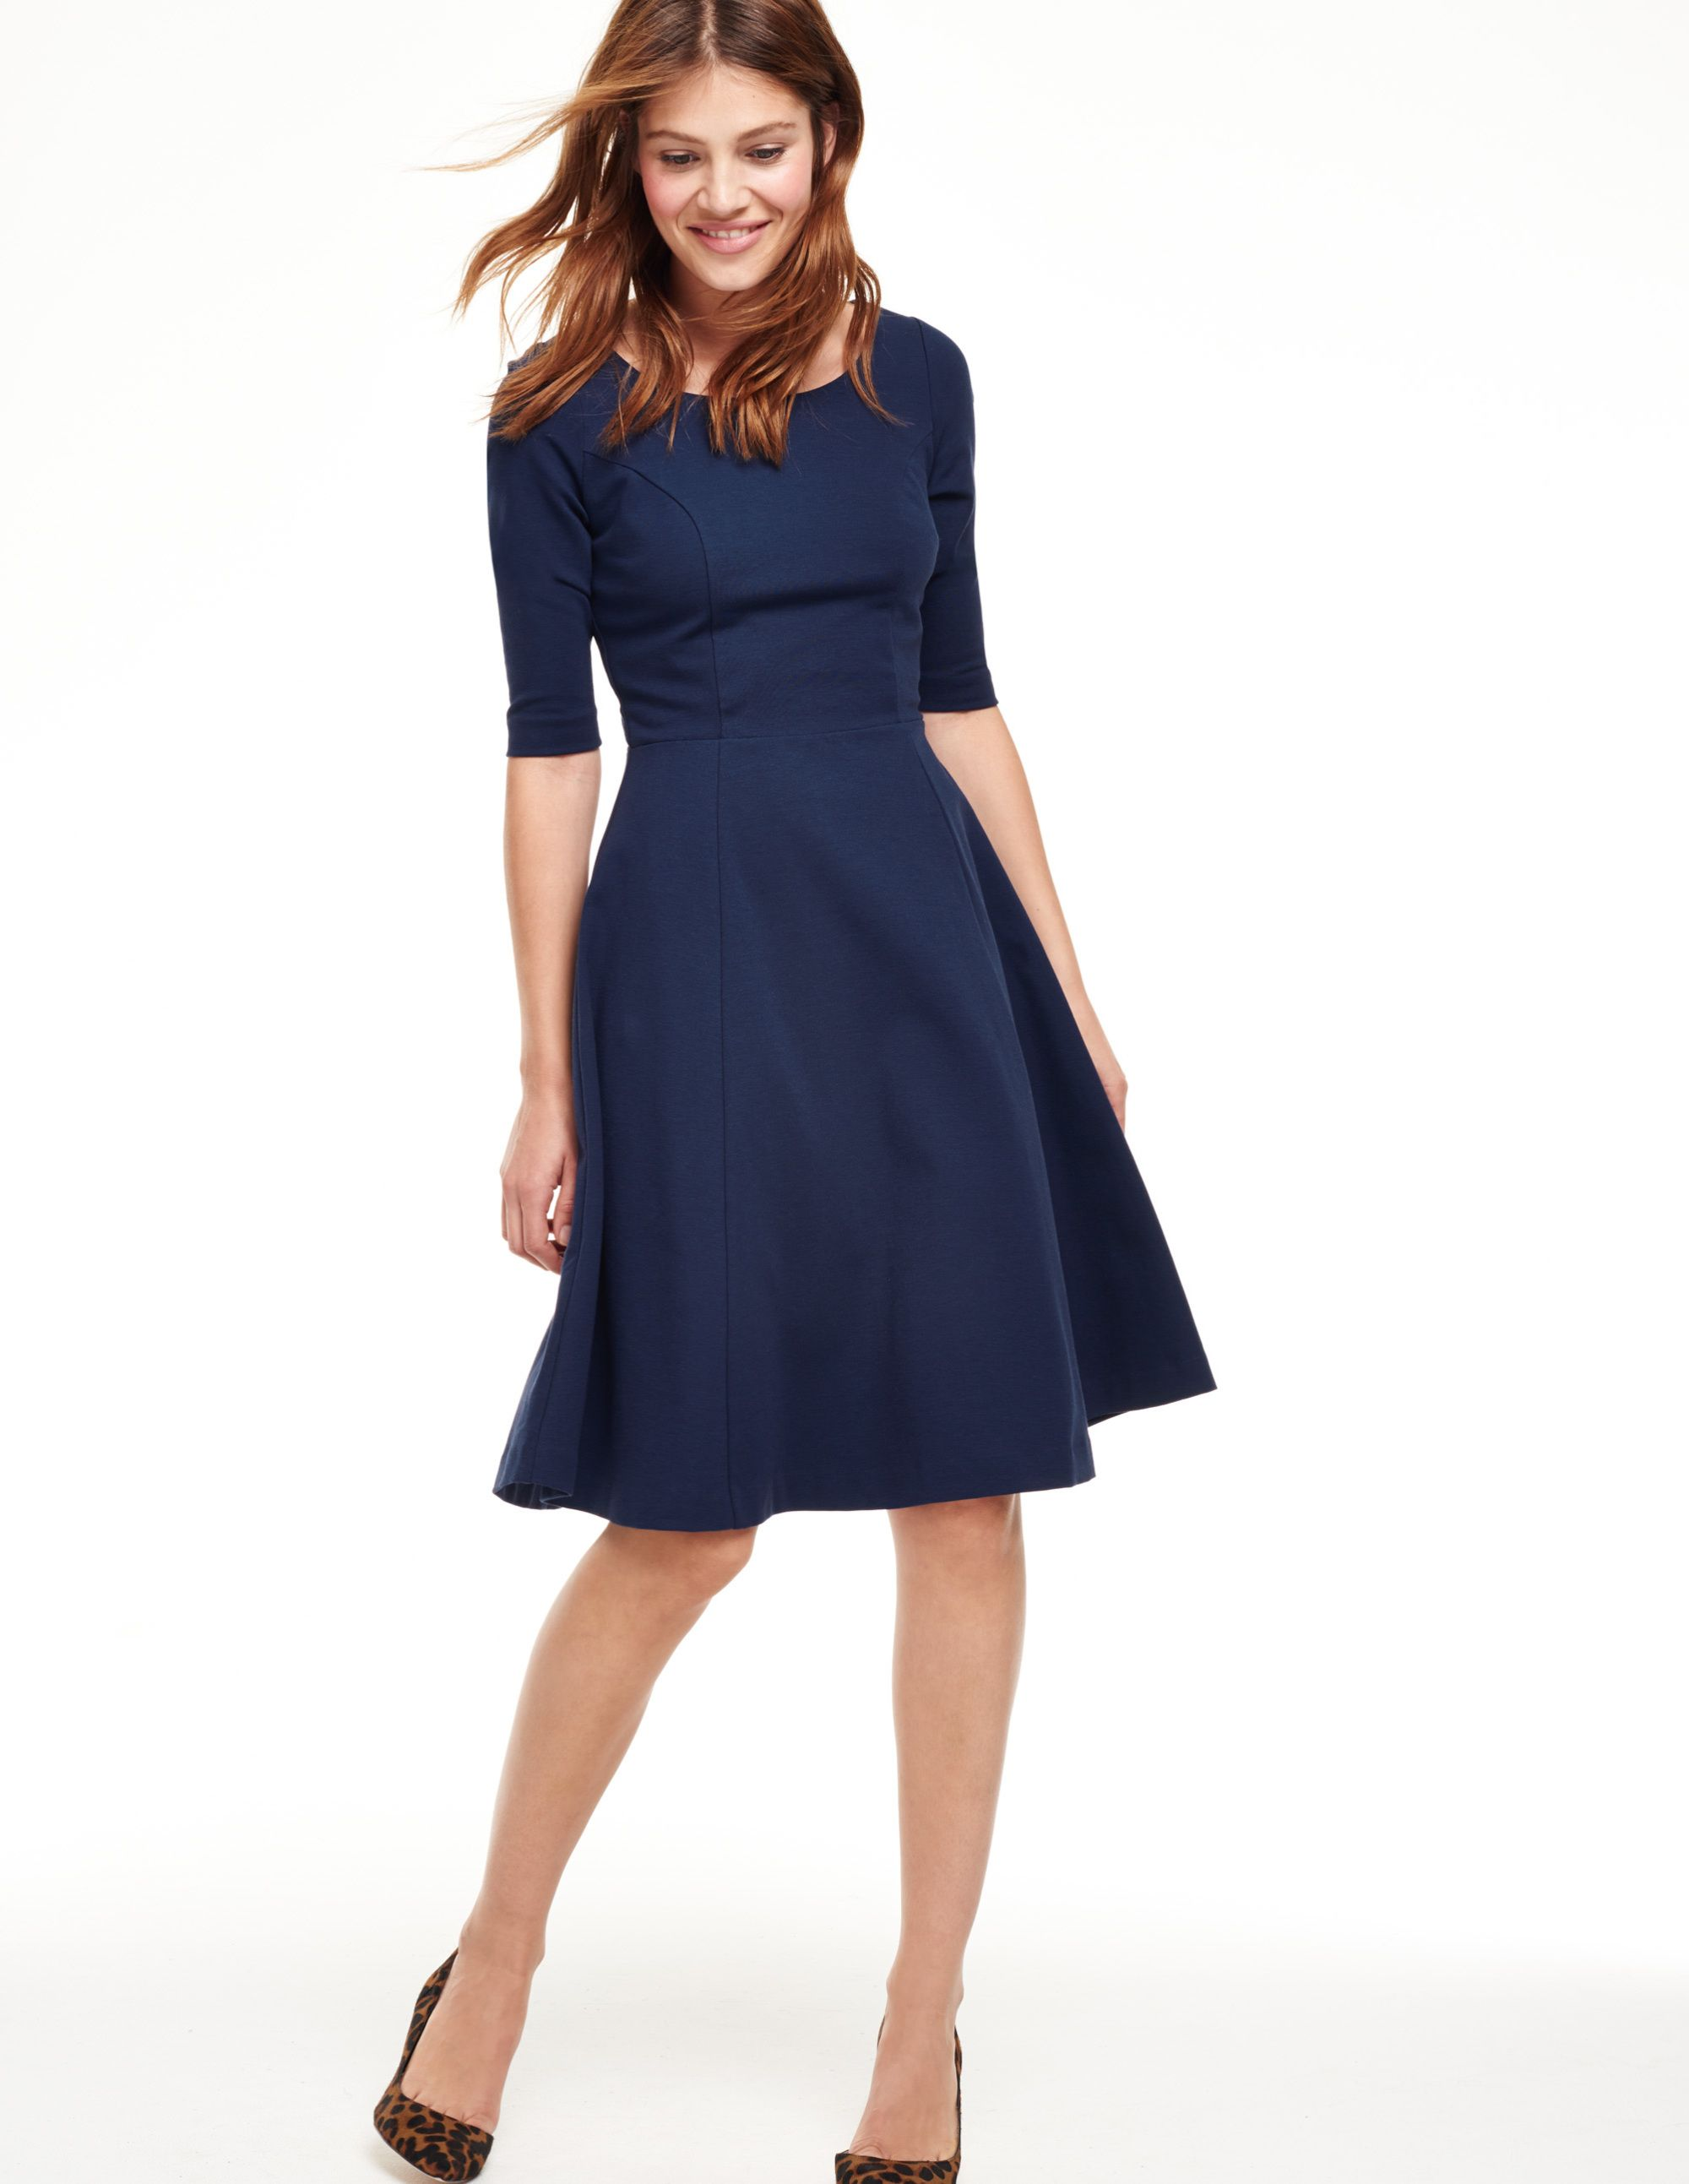 Alice Ponte Dress WH893 Day Dresses at Boden | Closet ...